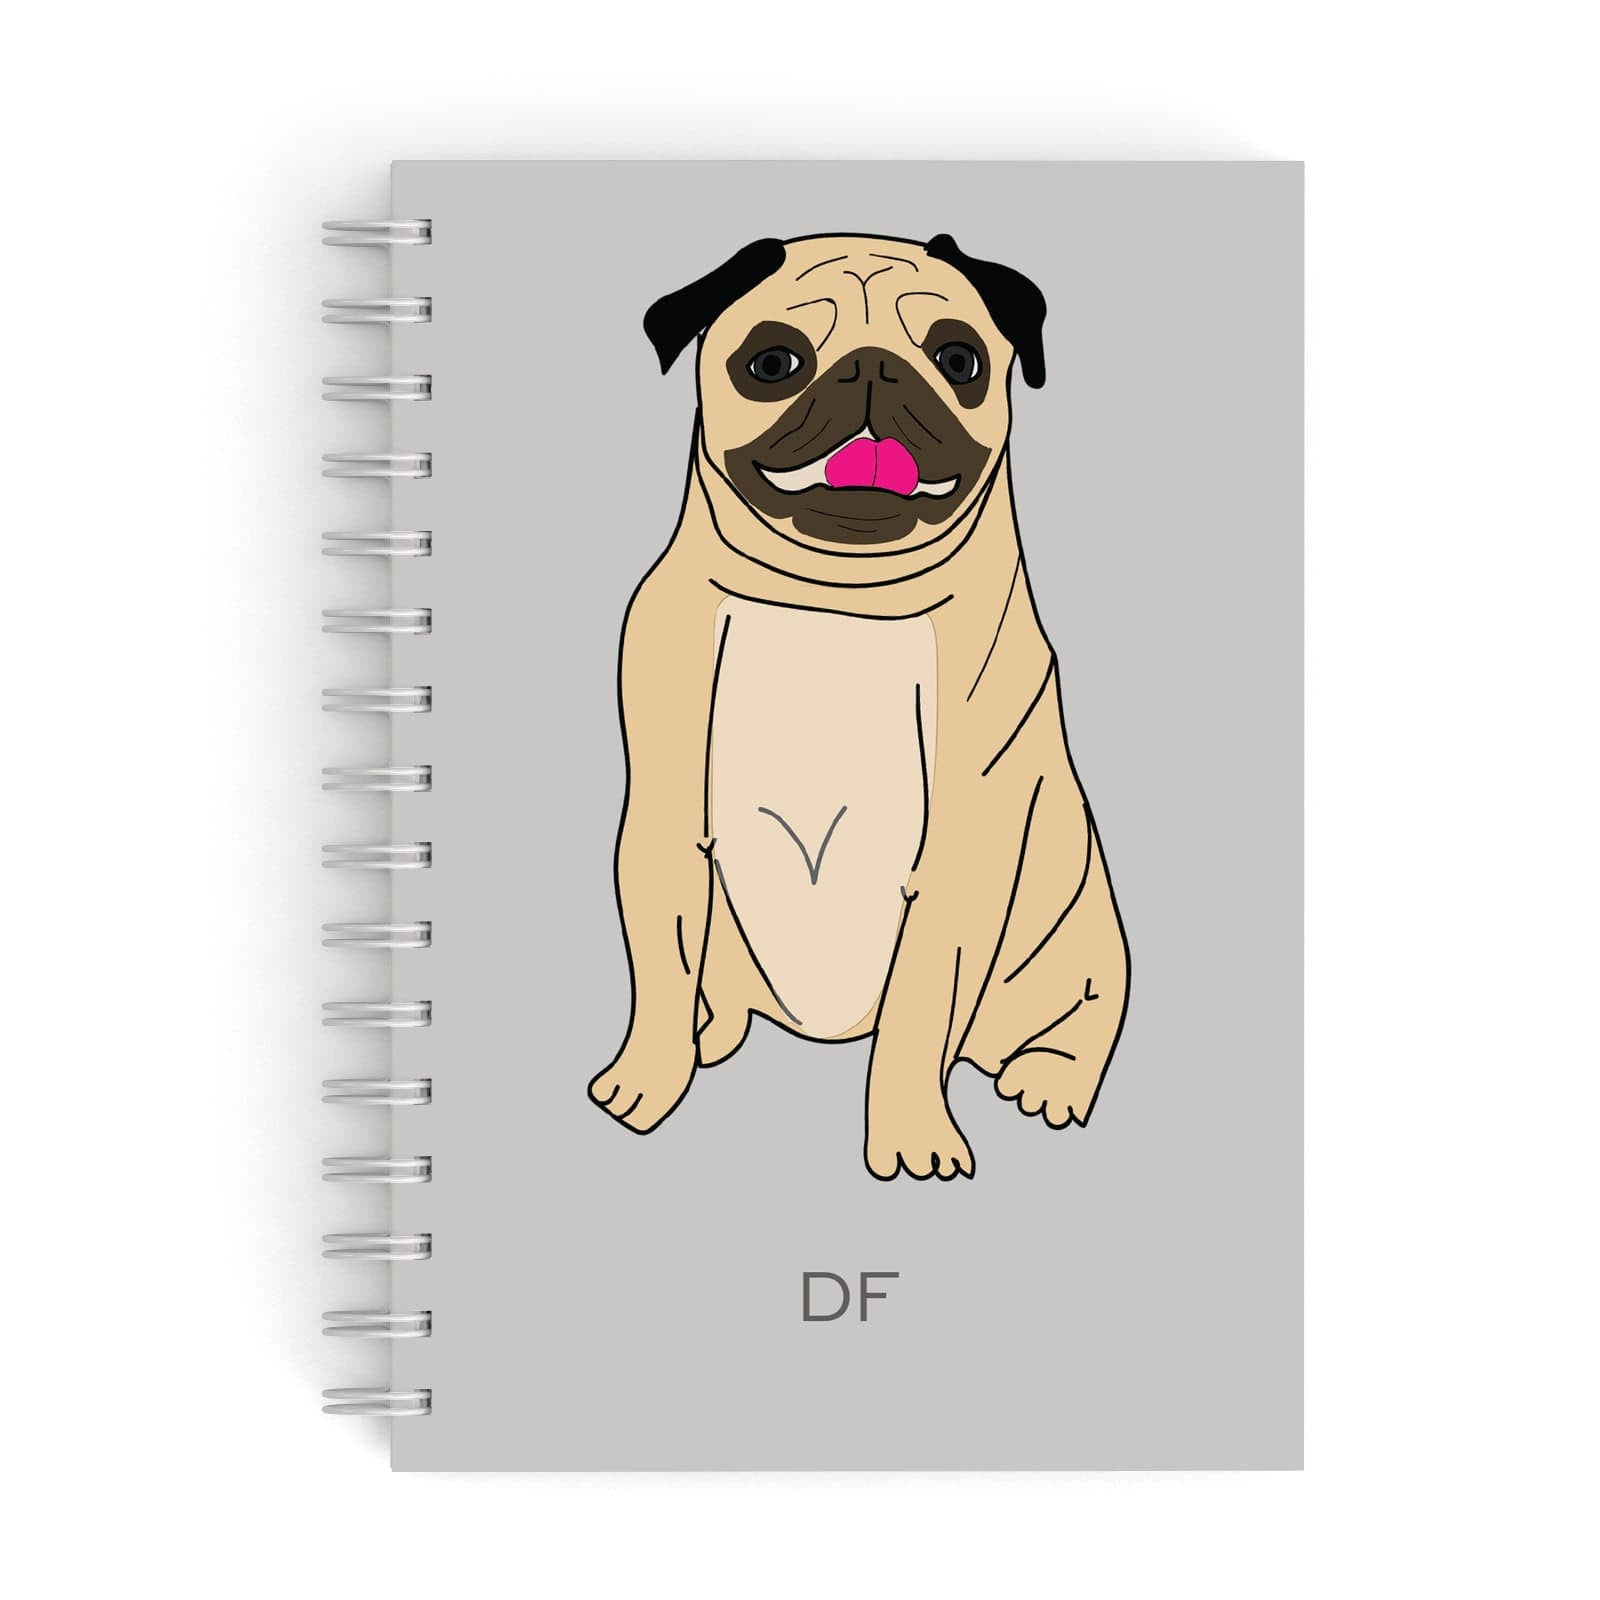 Personalised Initials Pug A5 Hardcover Notebook